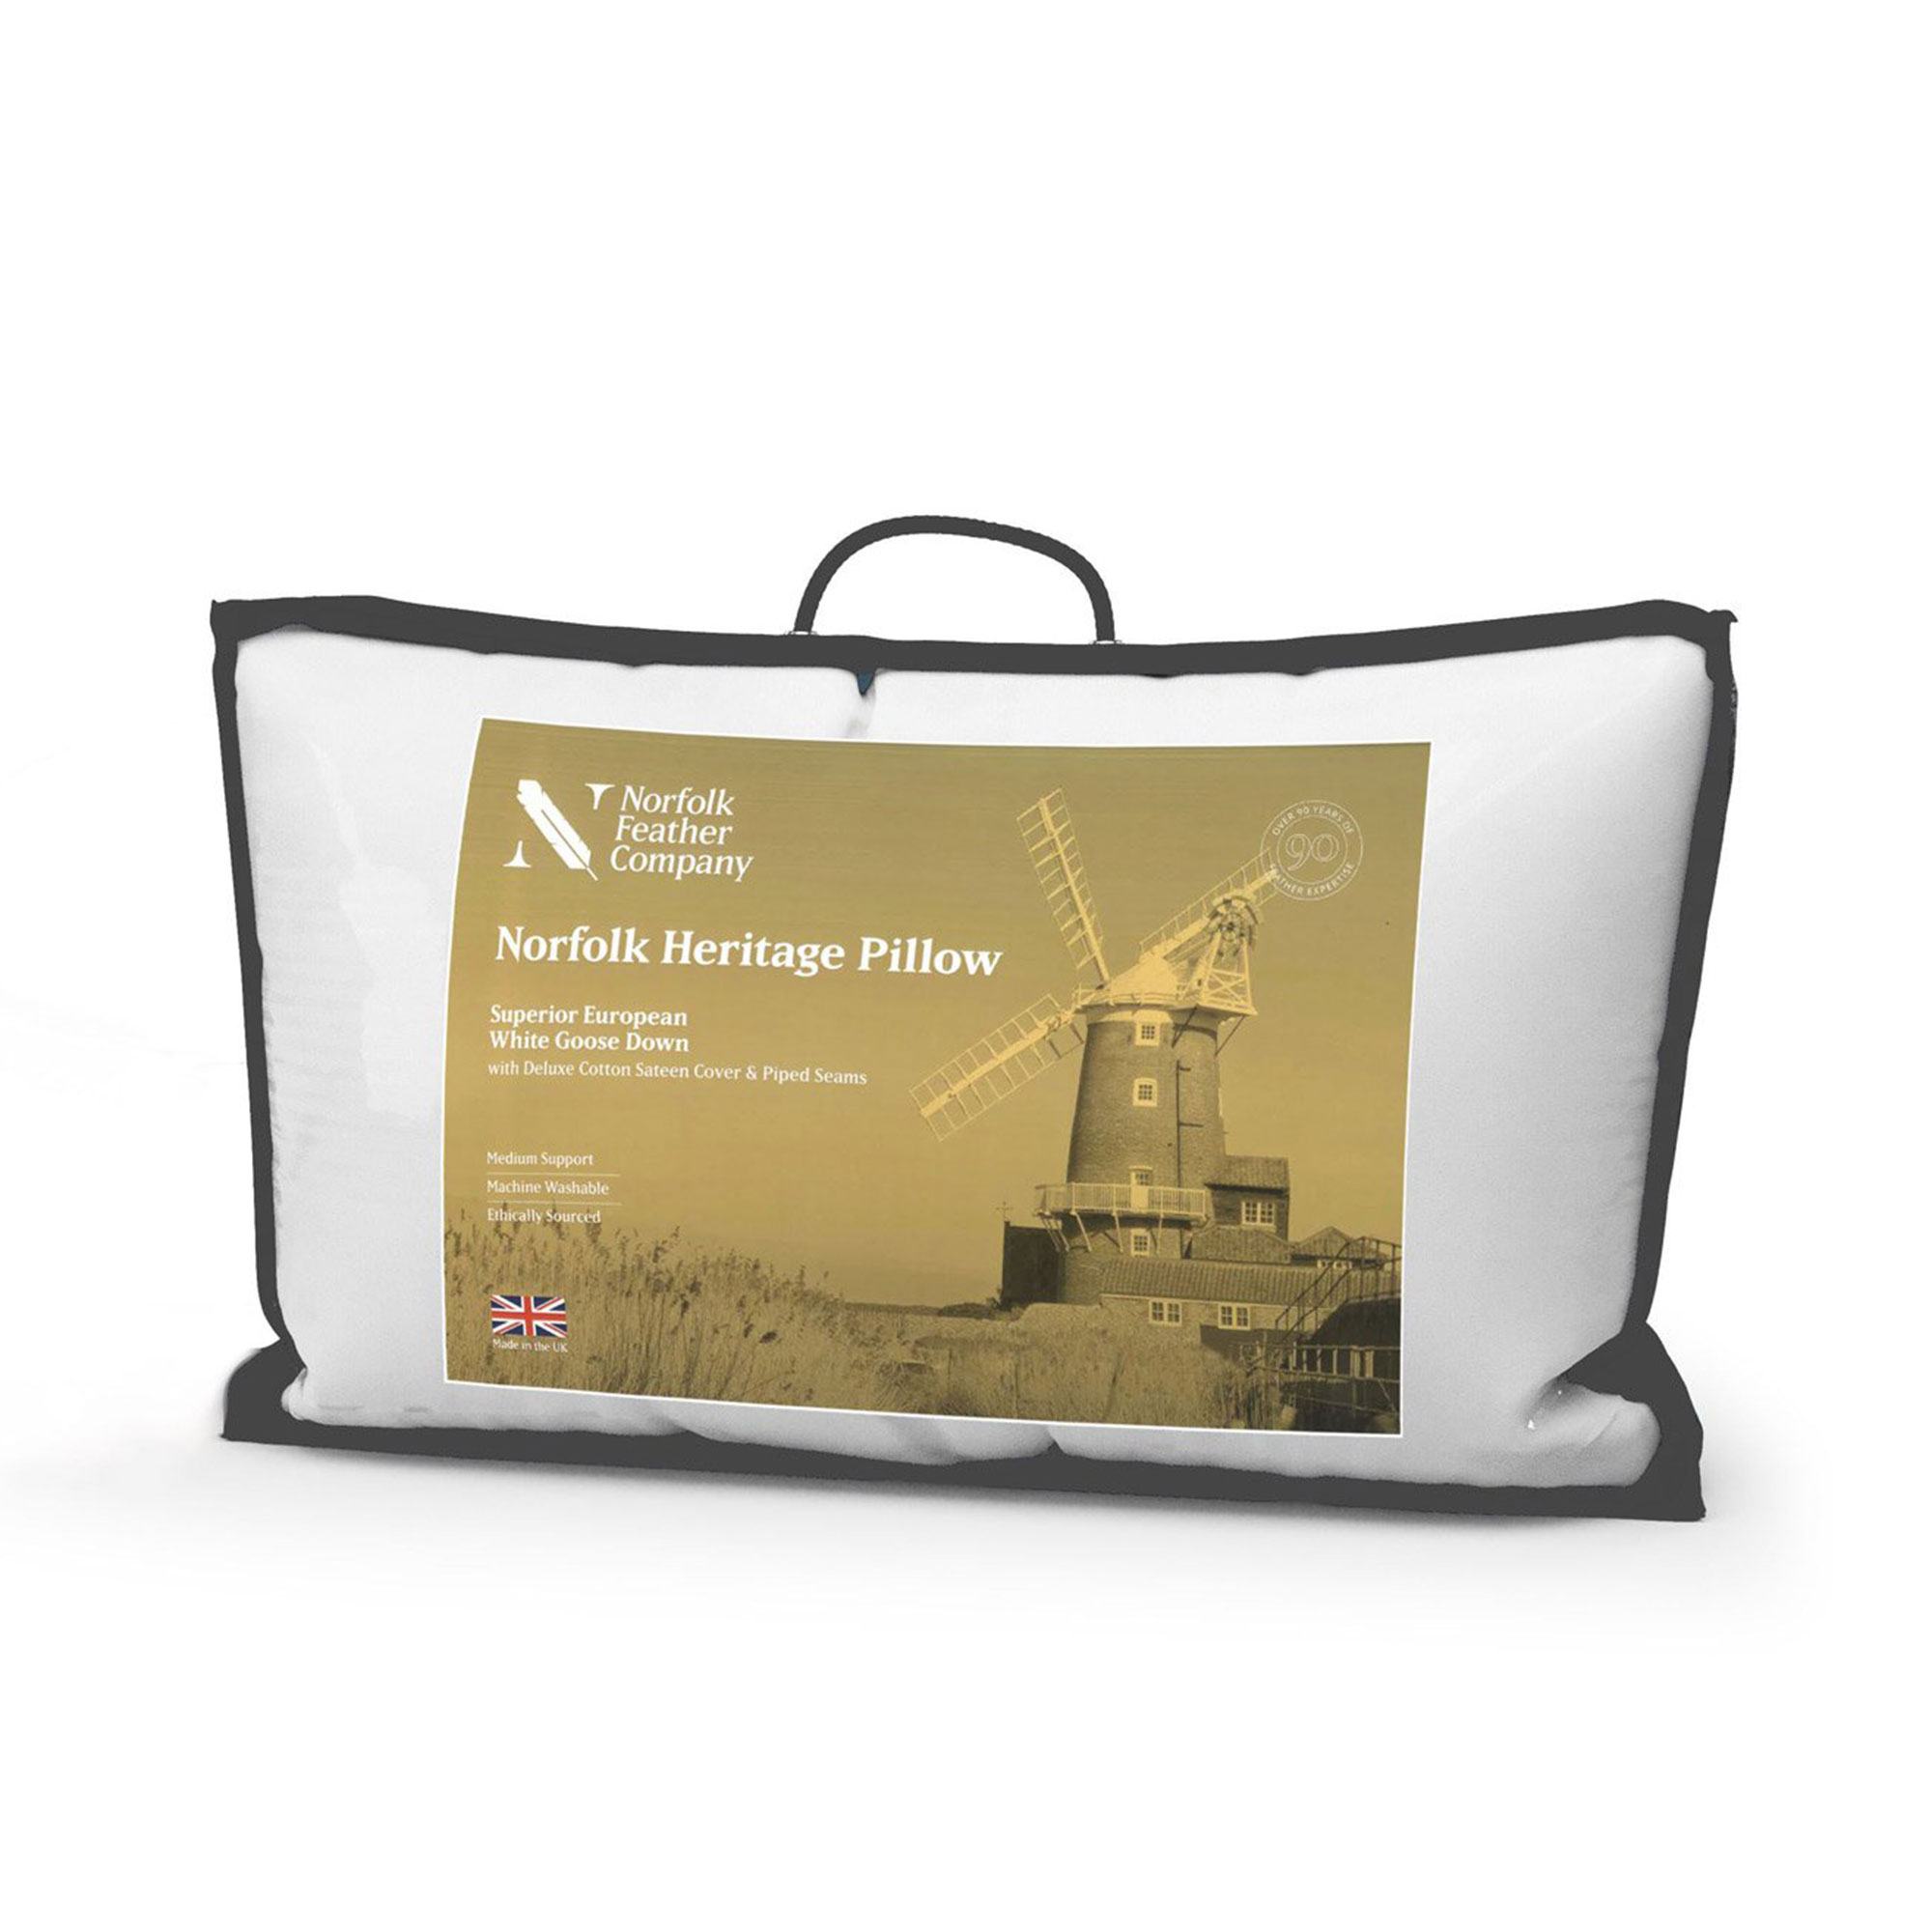 Goose Down Throw Pillows : Princess Goose Down Pillow - Pillows - Fishpools